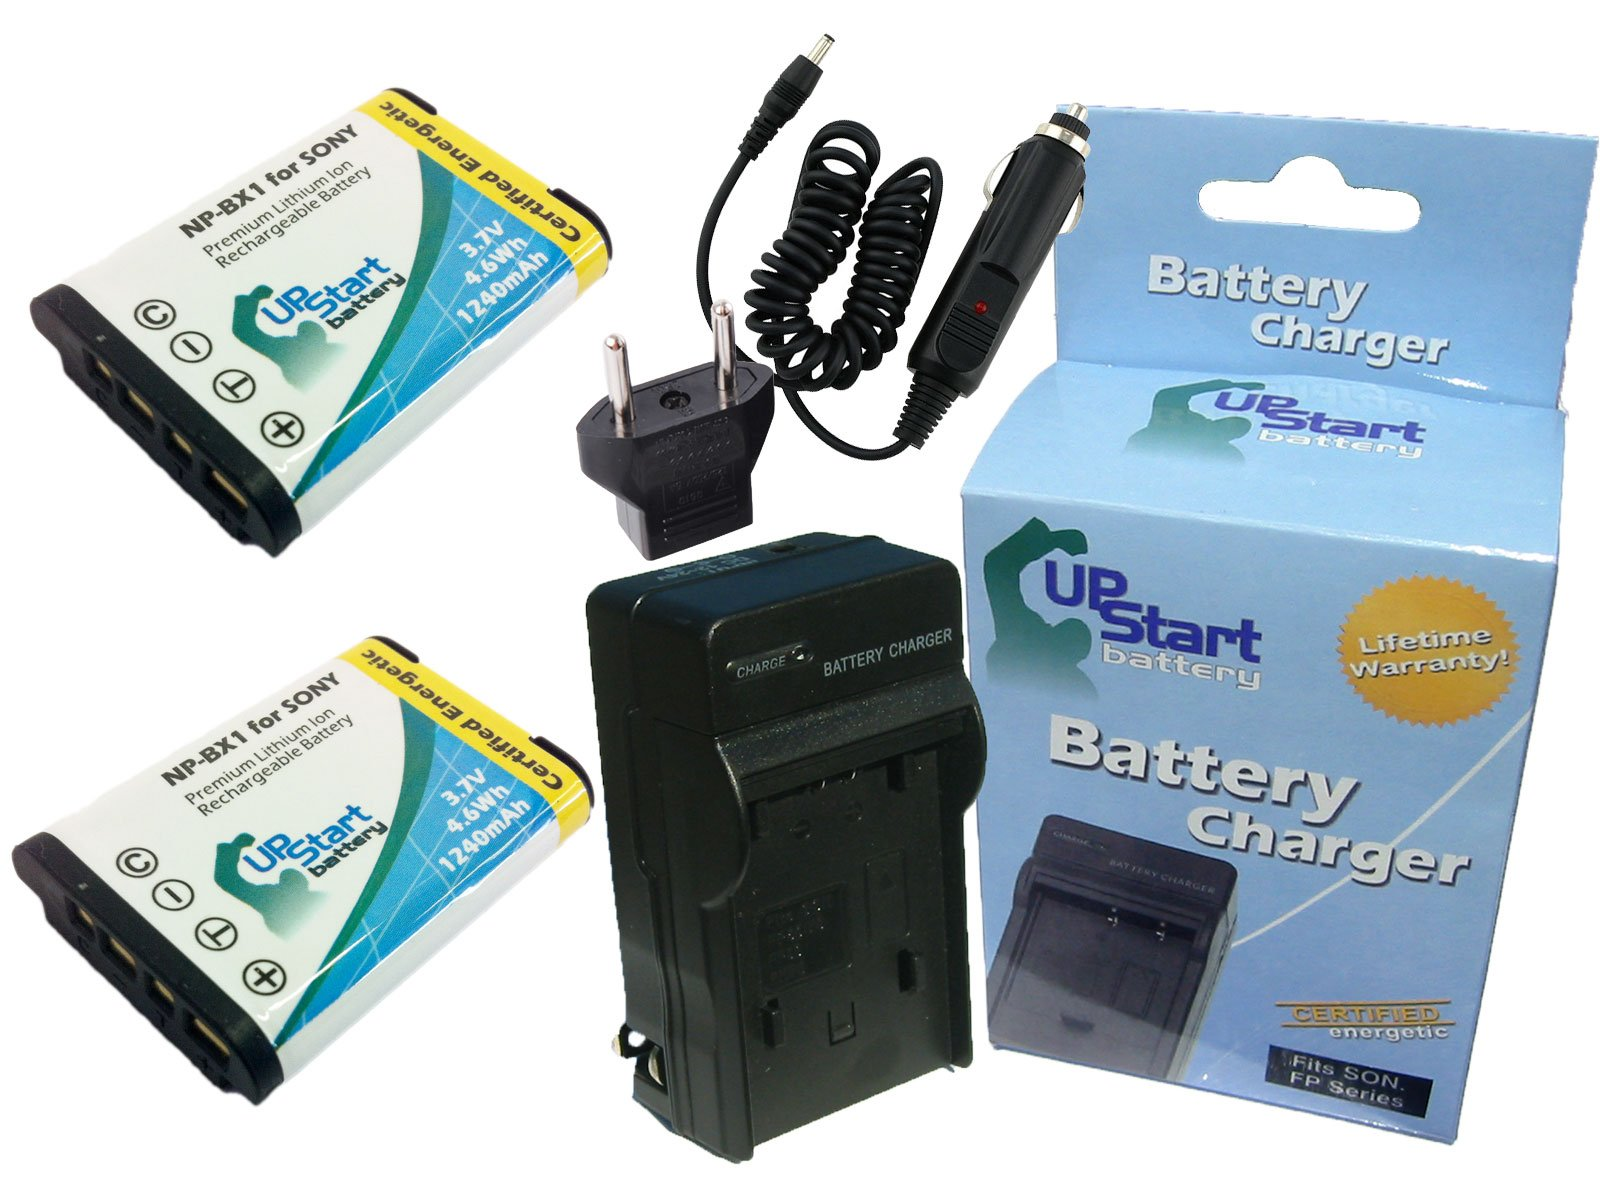 2 Pack - Replacement for Sony DSC-WX300/B Battery + Charger with Car & EU Adapters - Compatible with Sony NP-BX1 Digital Camera Battery and Charger (1240mAh 3.7V Lithium-Ion)